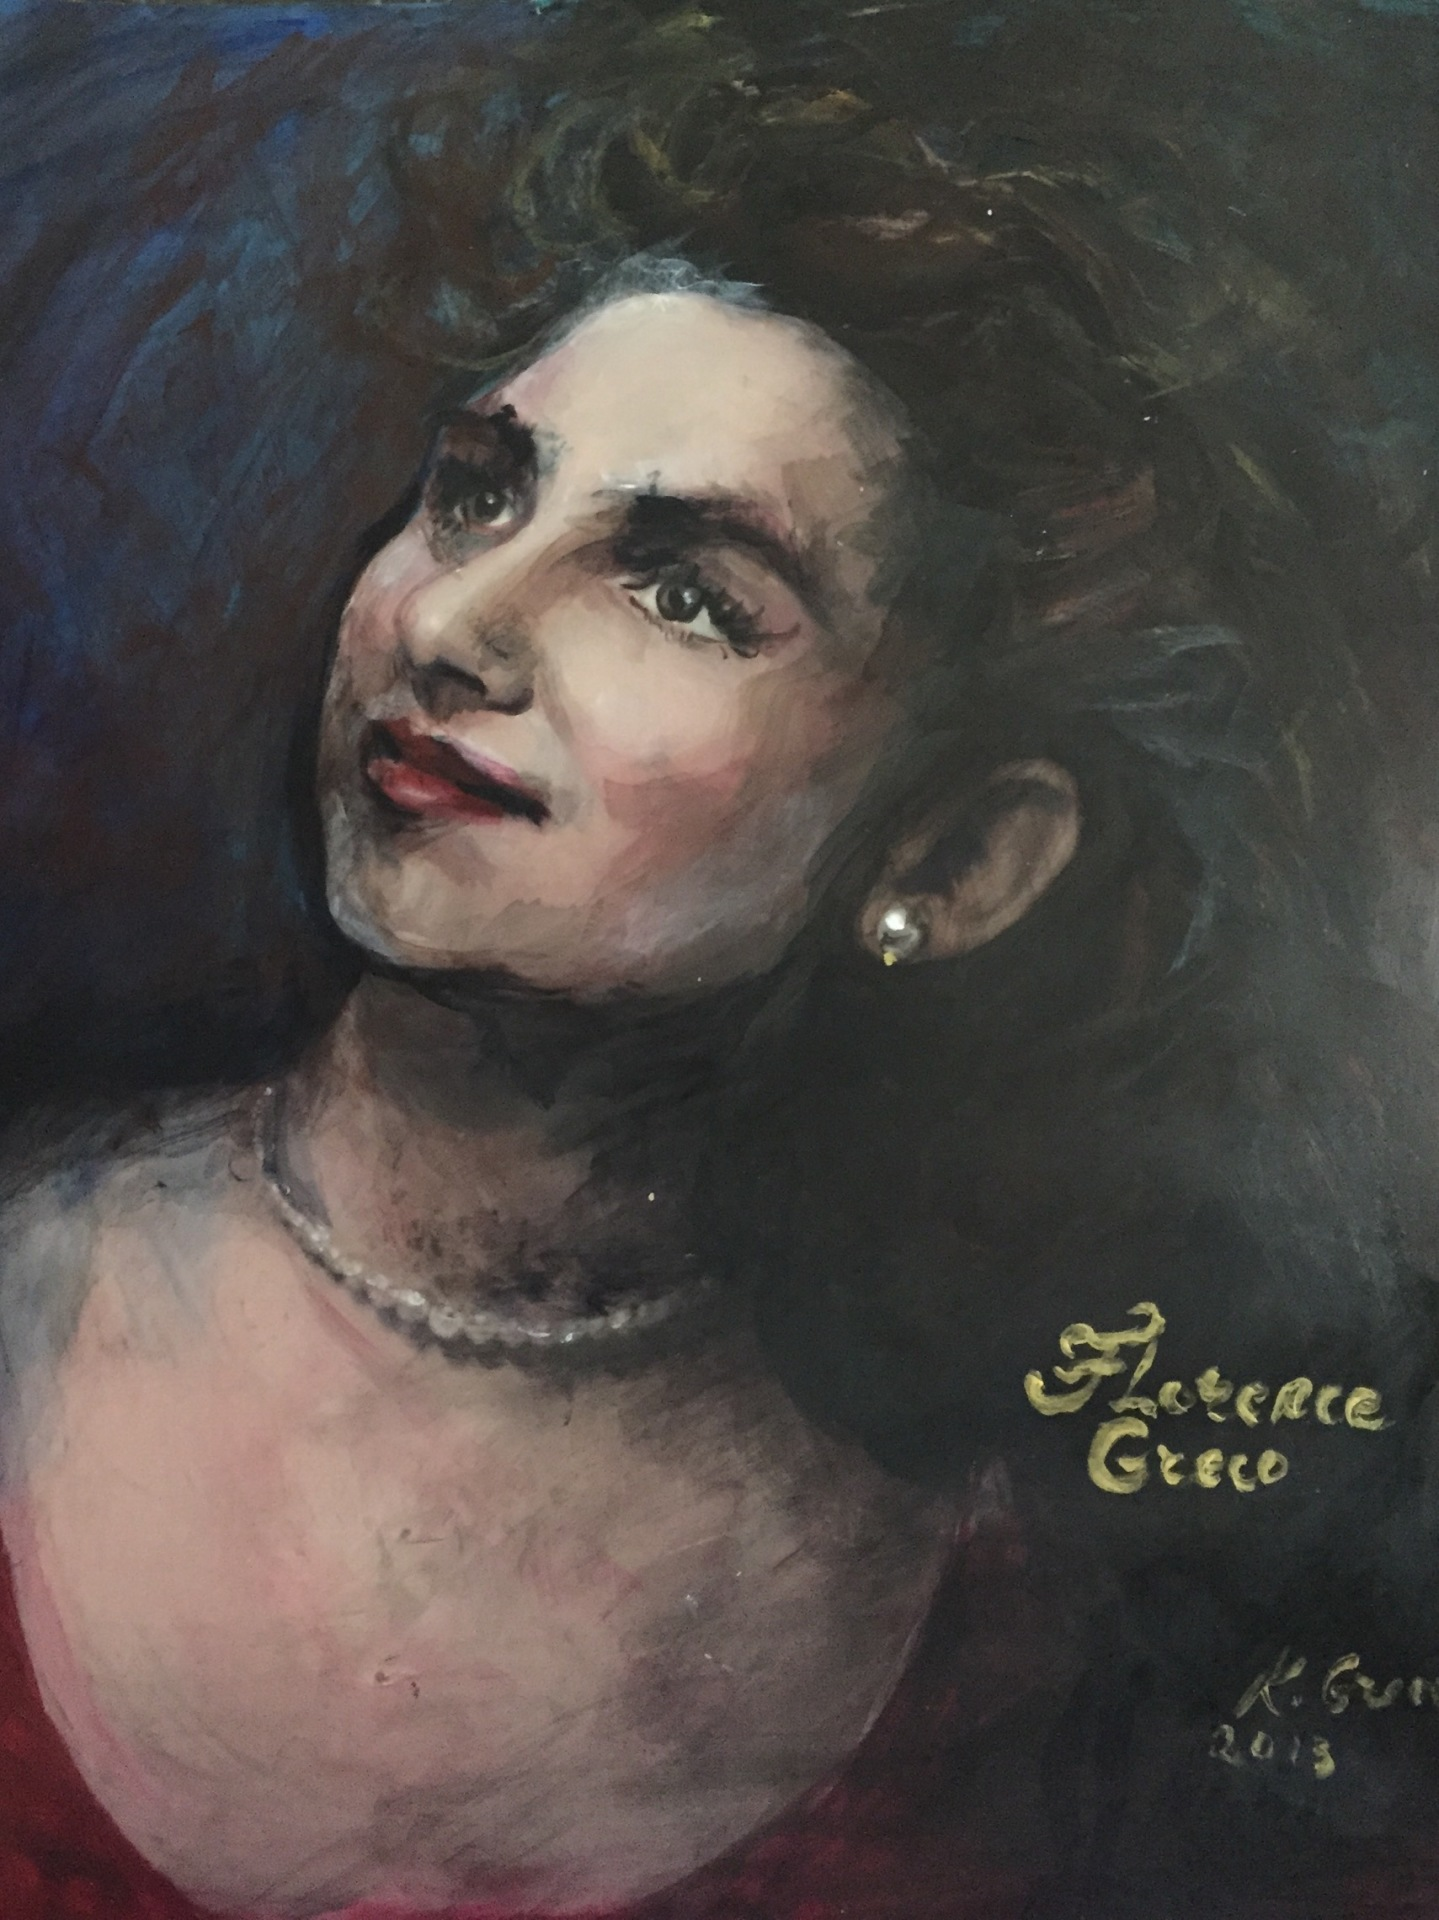 """Florence Greco"" The Matriarch 80th Birthday Gift"